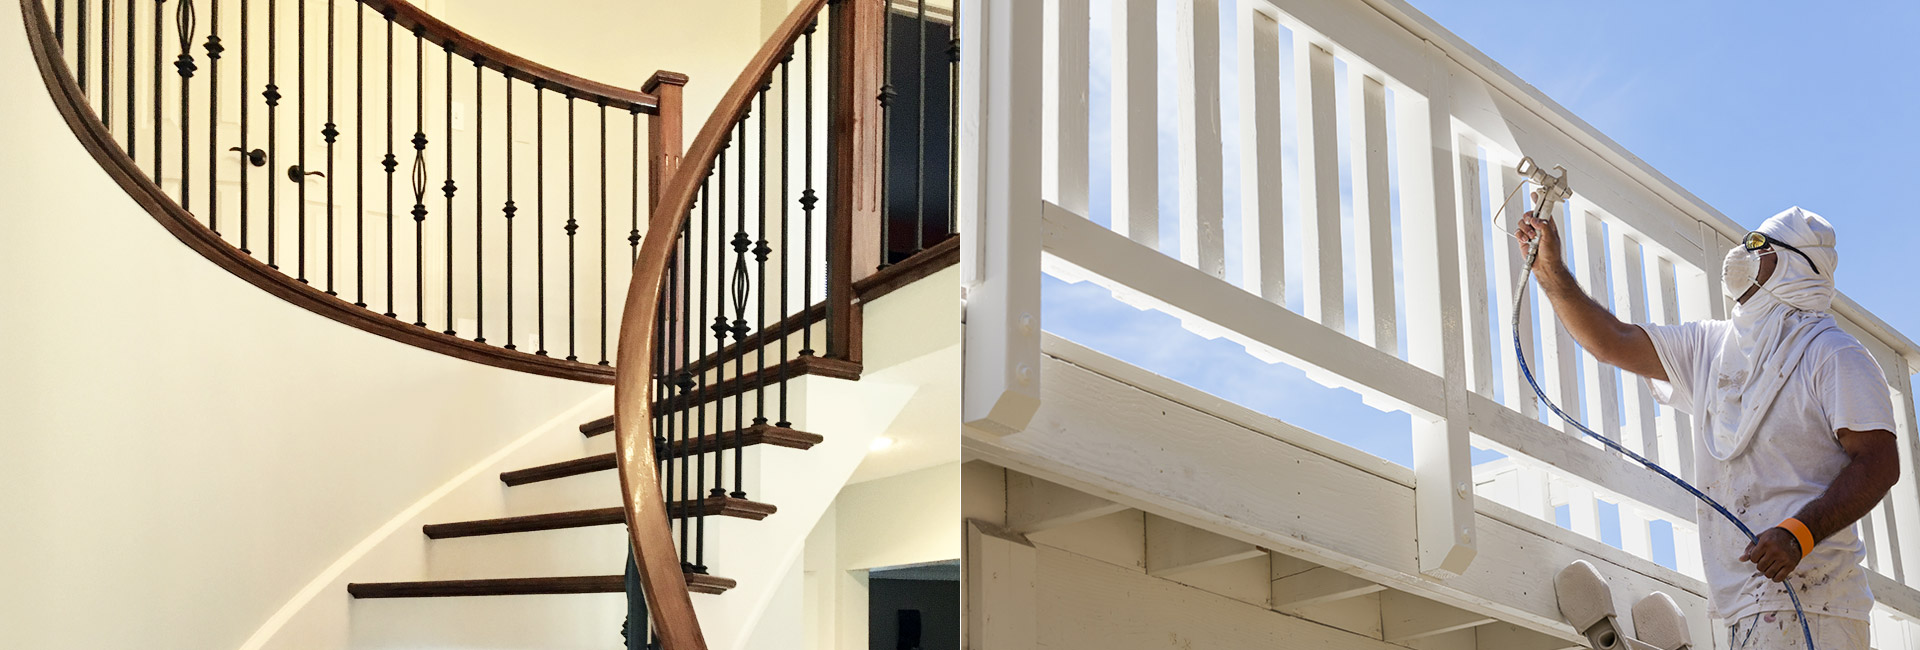 Hamilton Painting Painters Residential Commercial Industrial - Residential painting